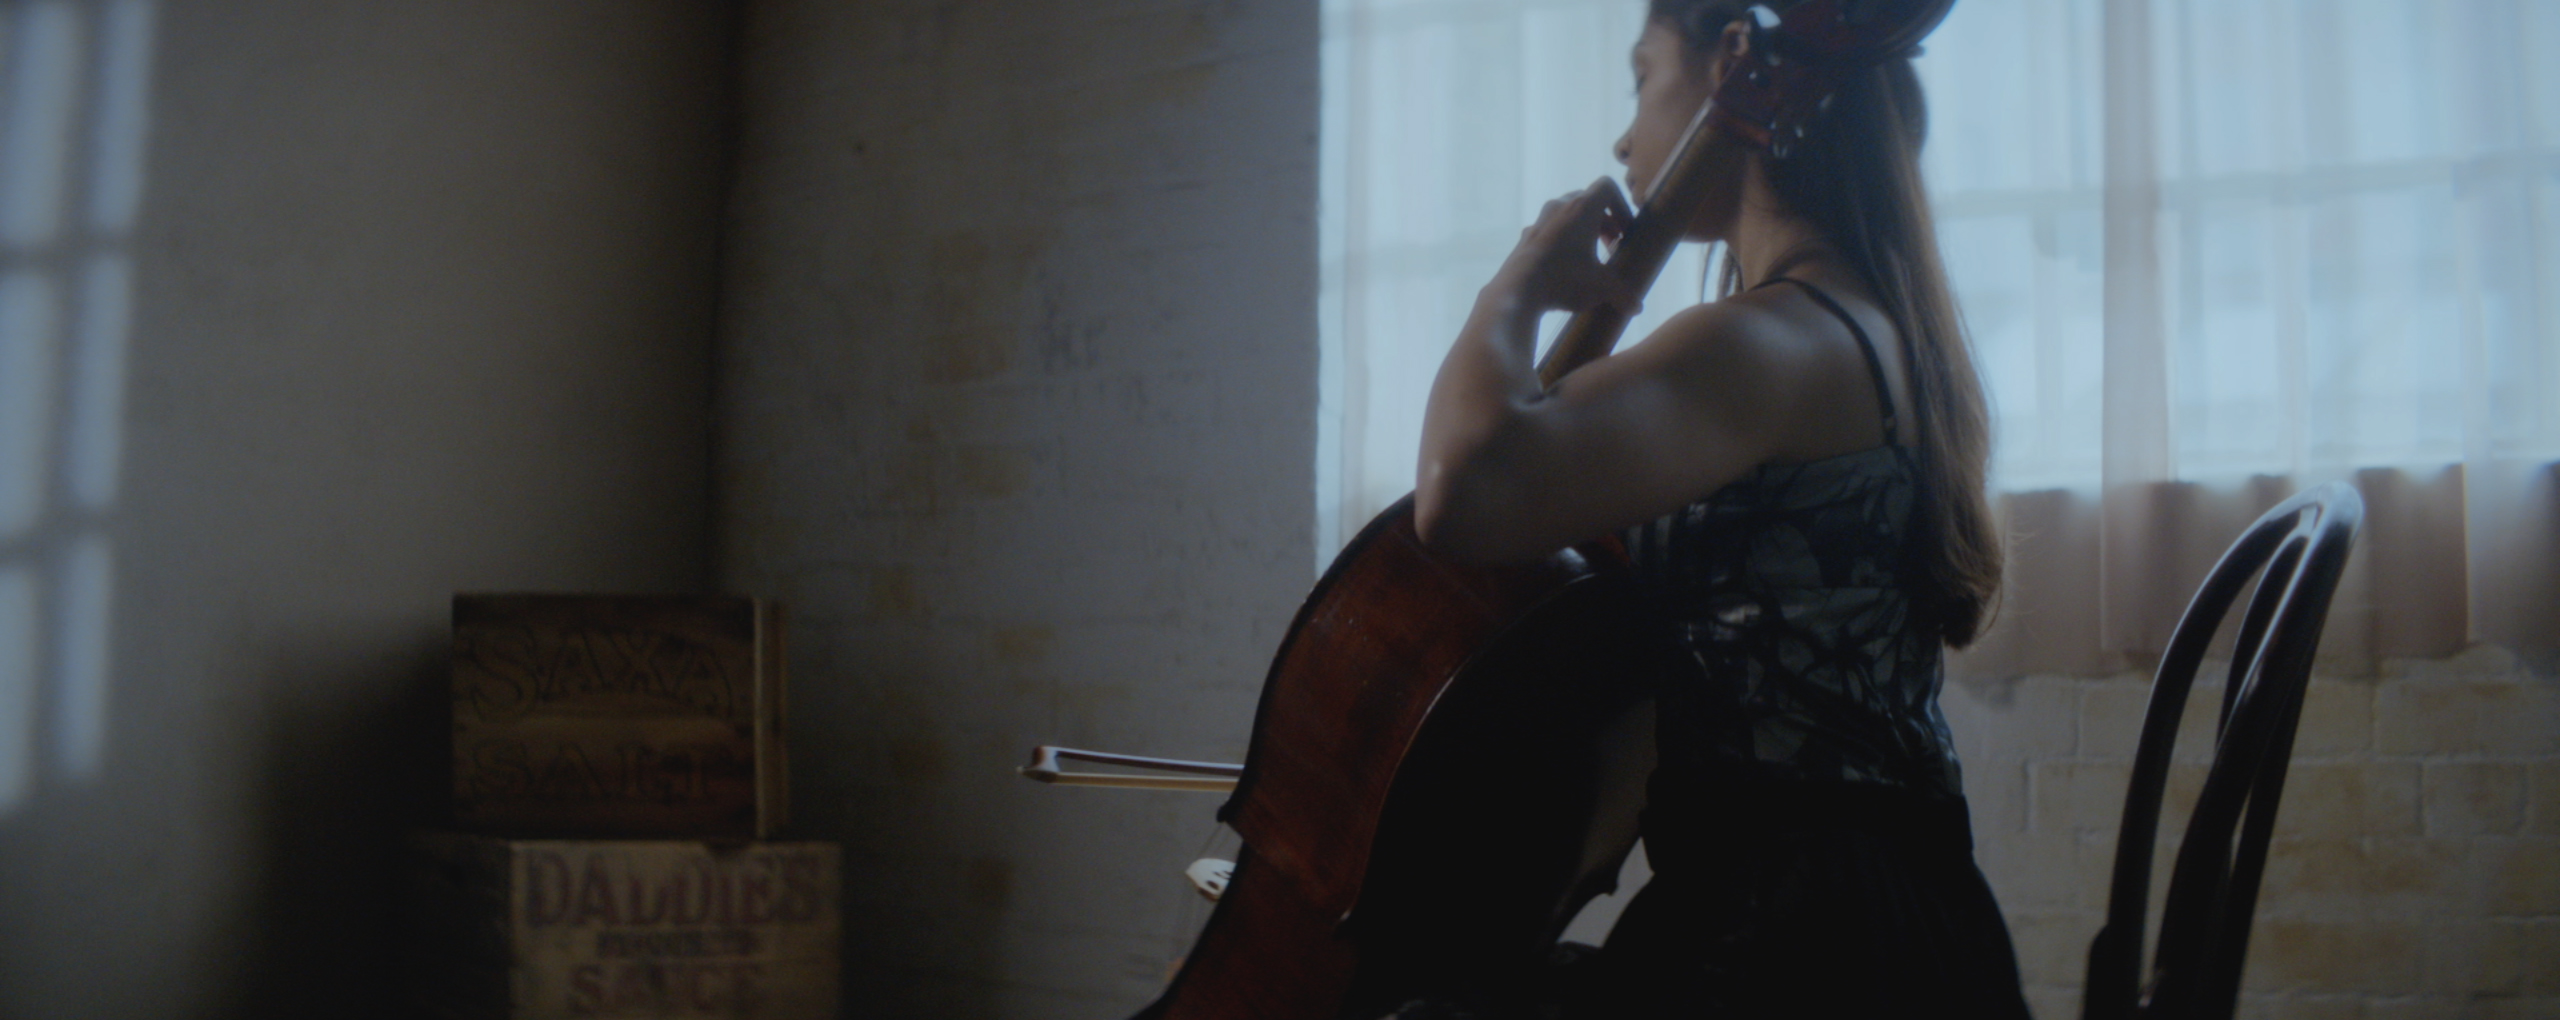 PALOMA CELLO